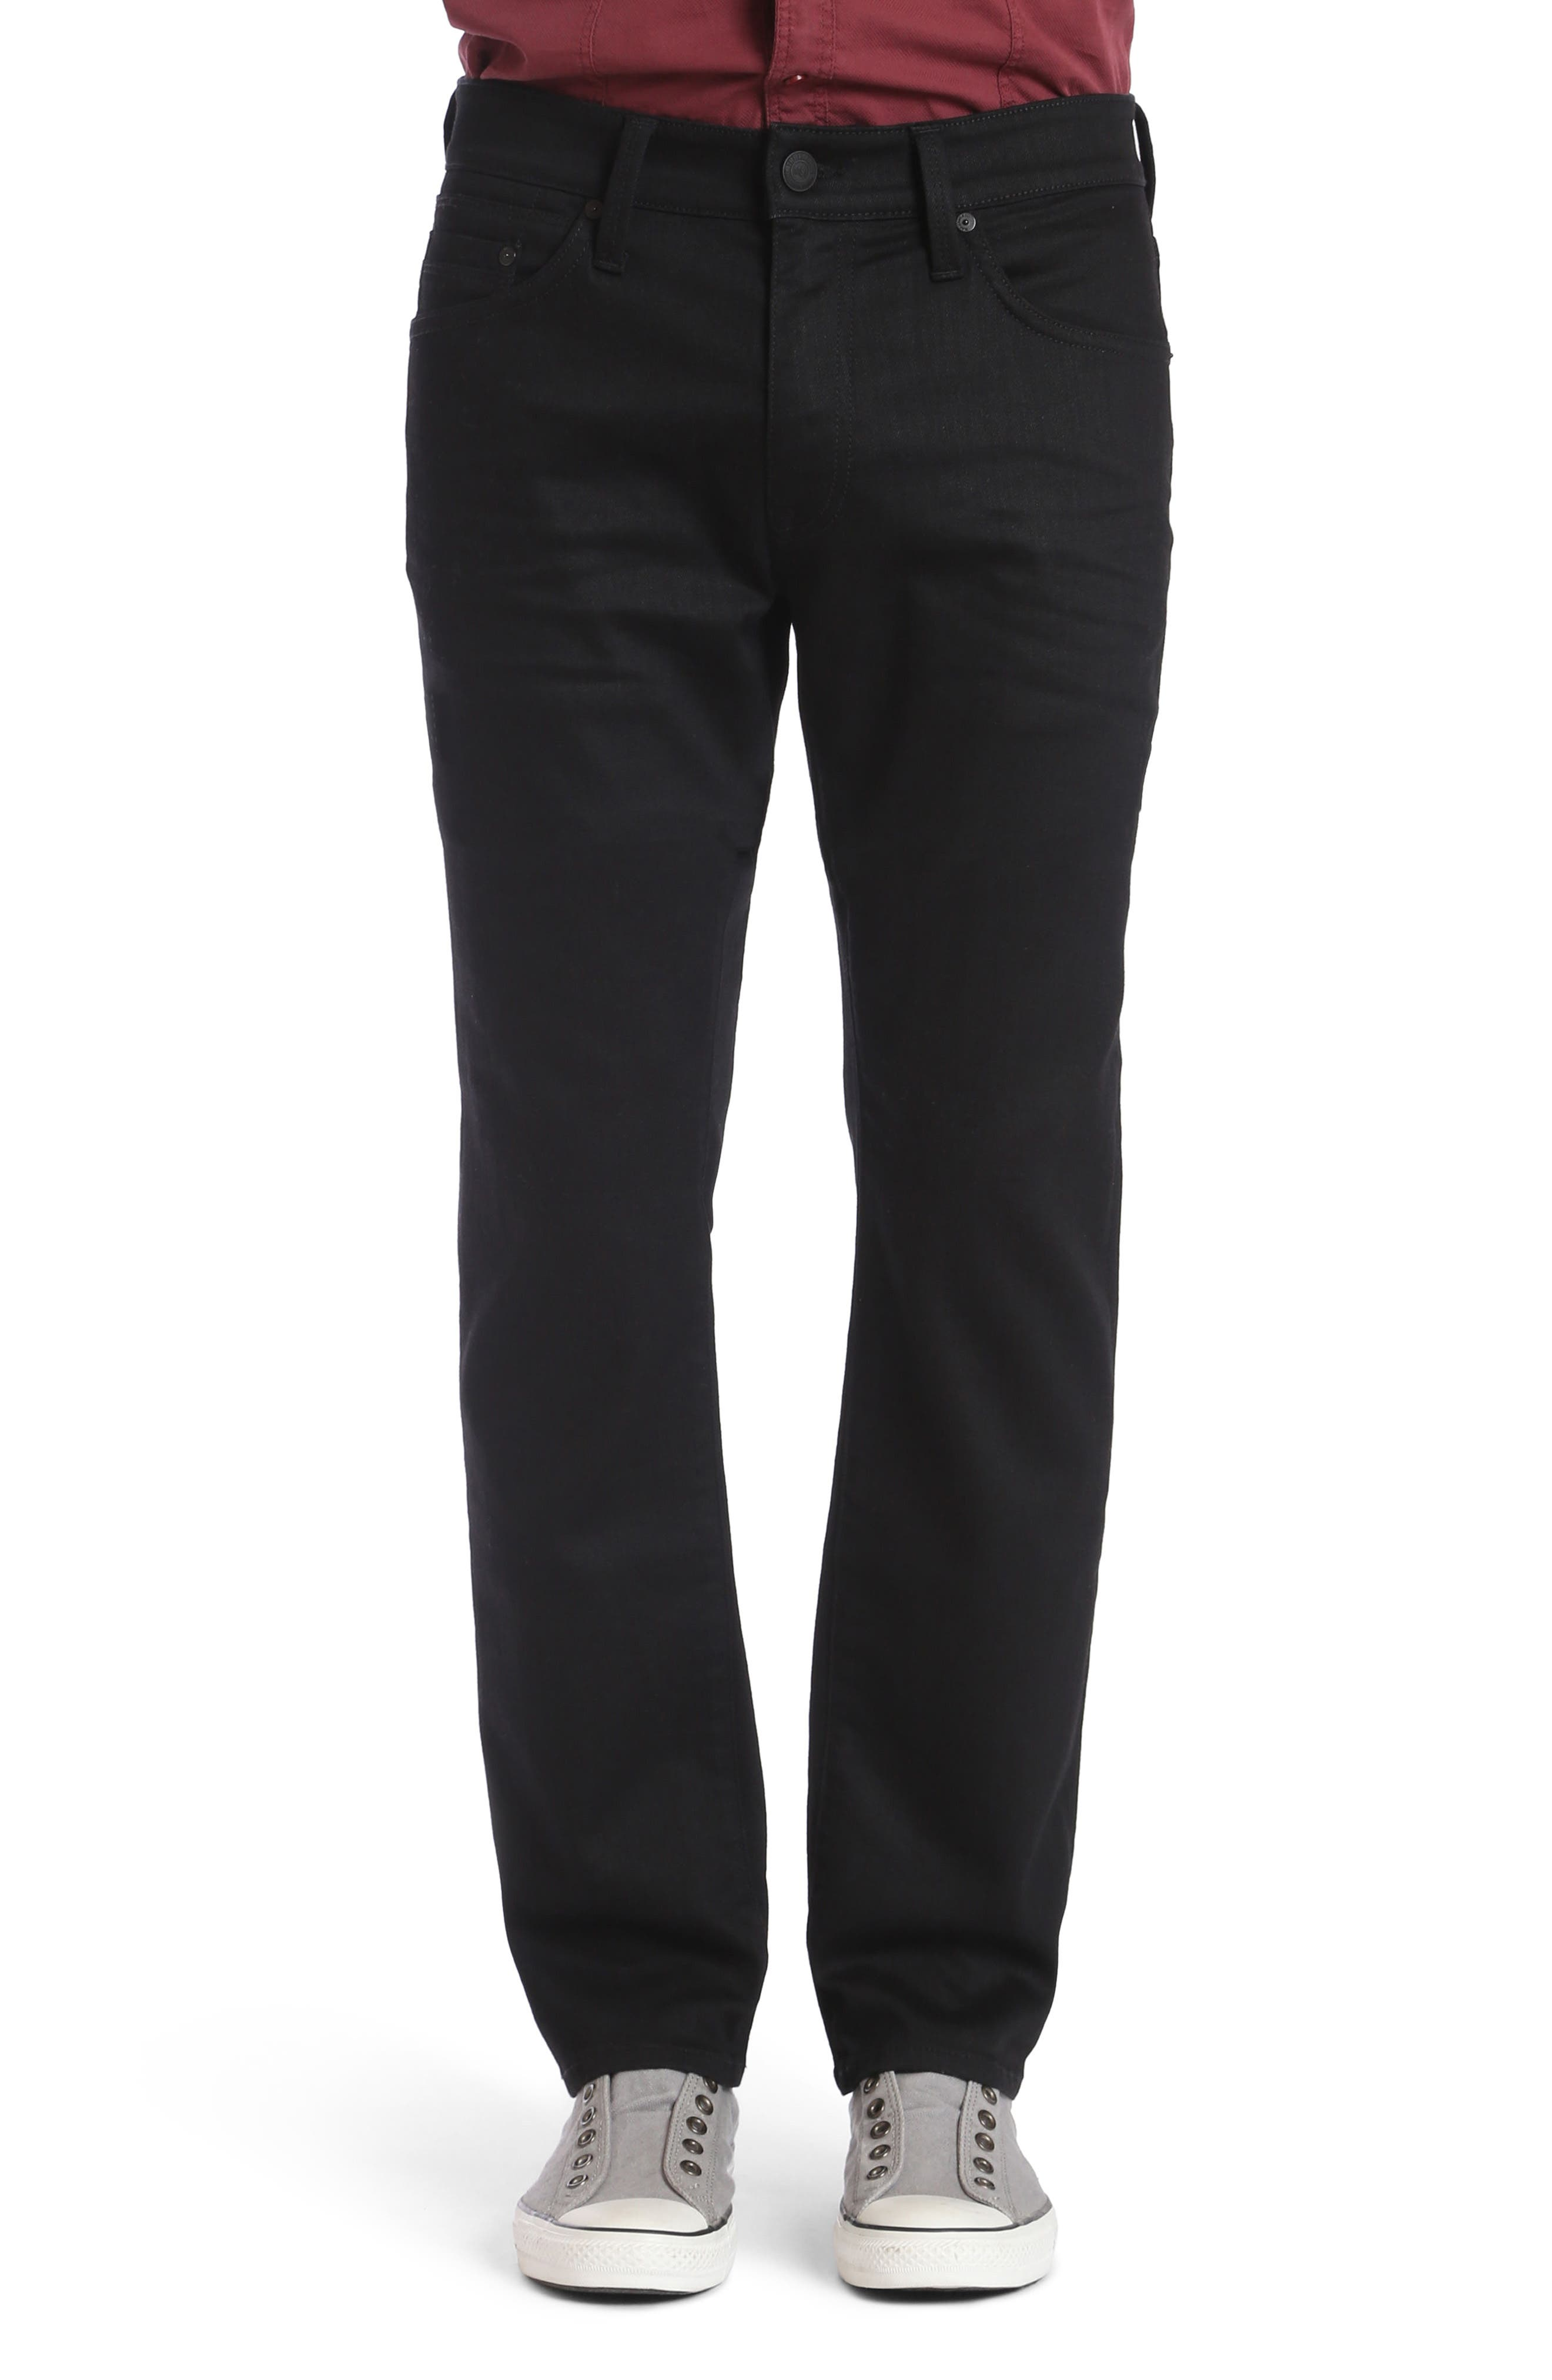 Zach Straight Fit Jeans,                             Main thumbnail 1, color,                             Black Brushed Williamsburg